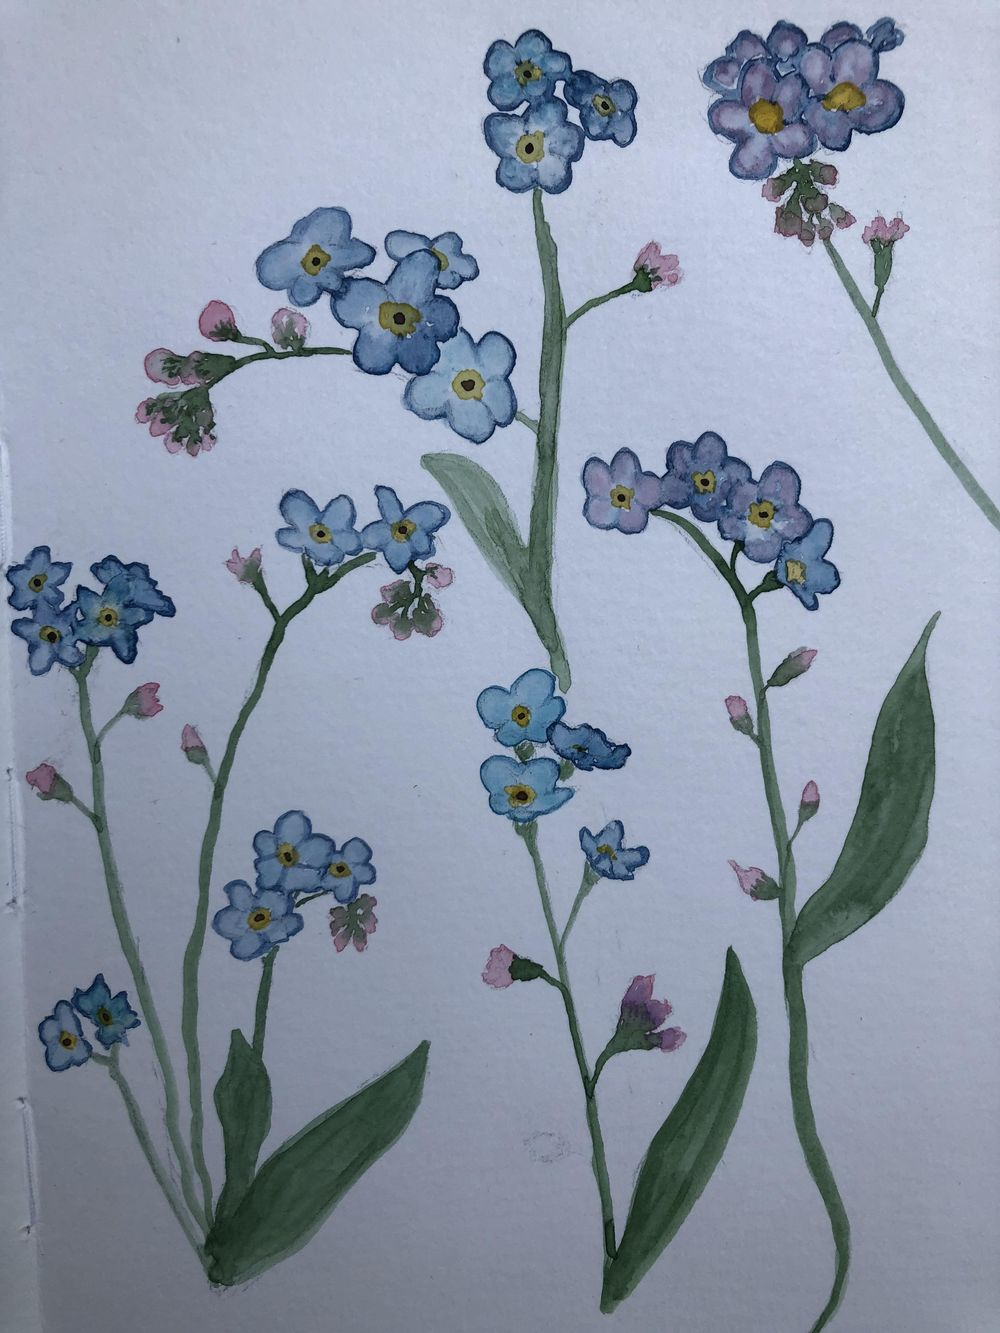 Forgetmenot - image 2 - student project